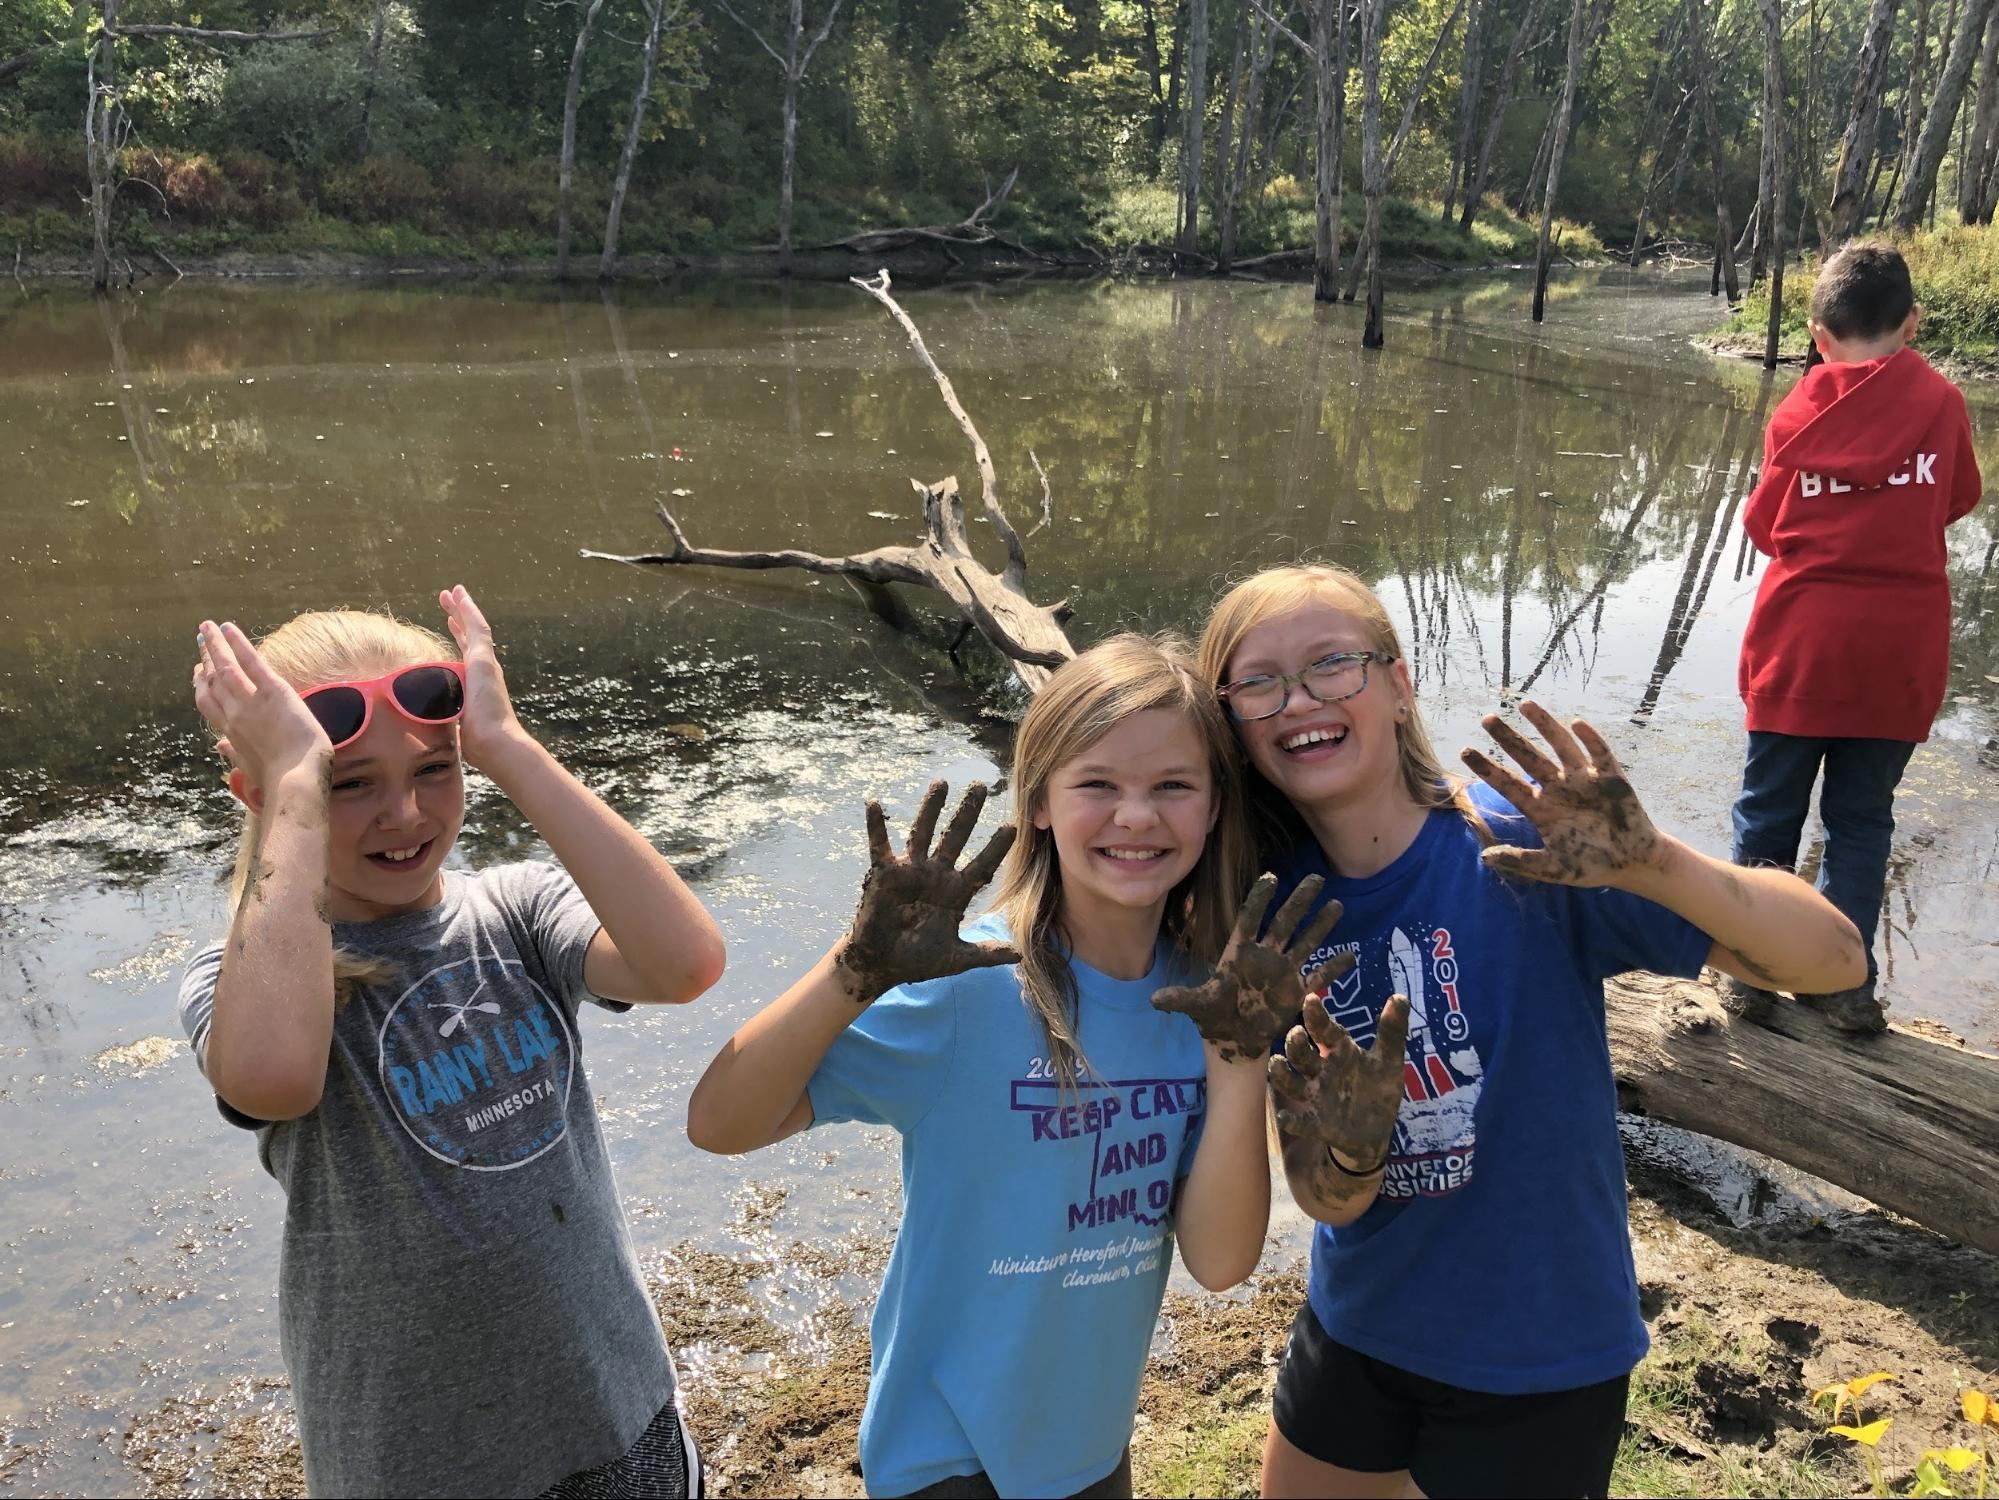 Elementary students standing in front of a lake, holding up muddy hands